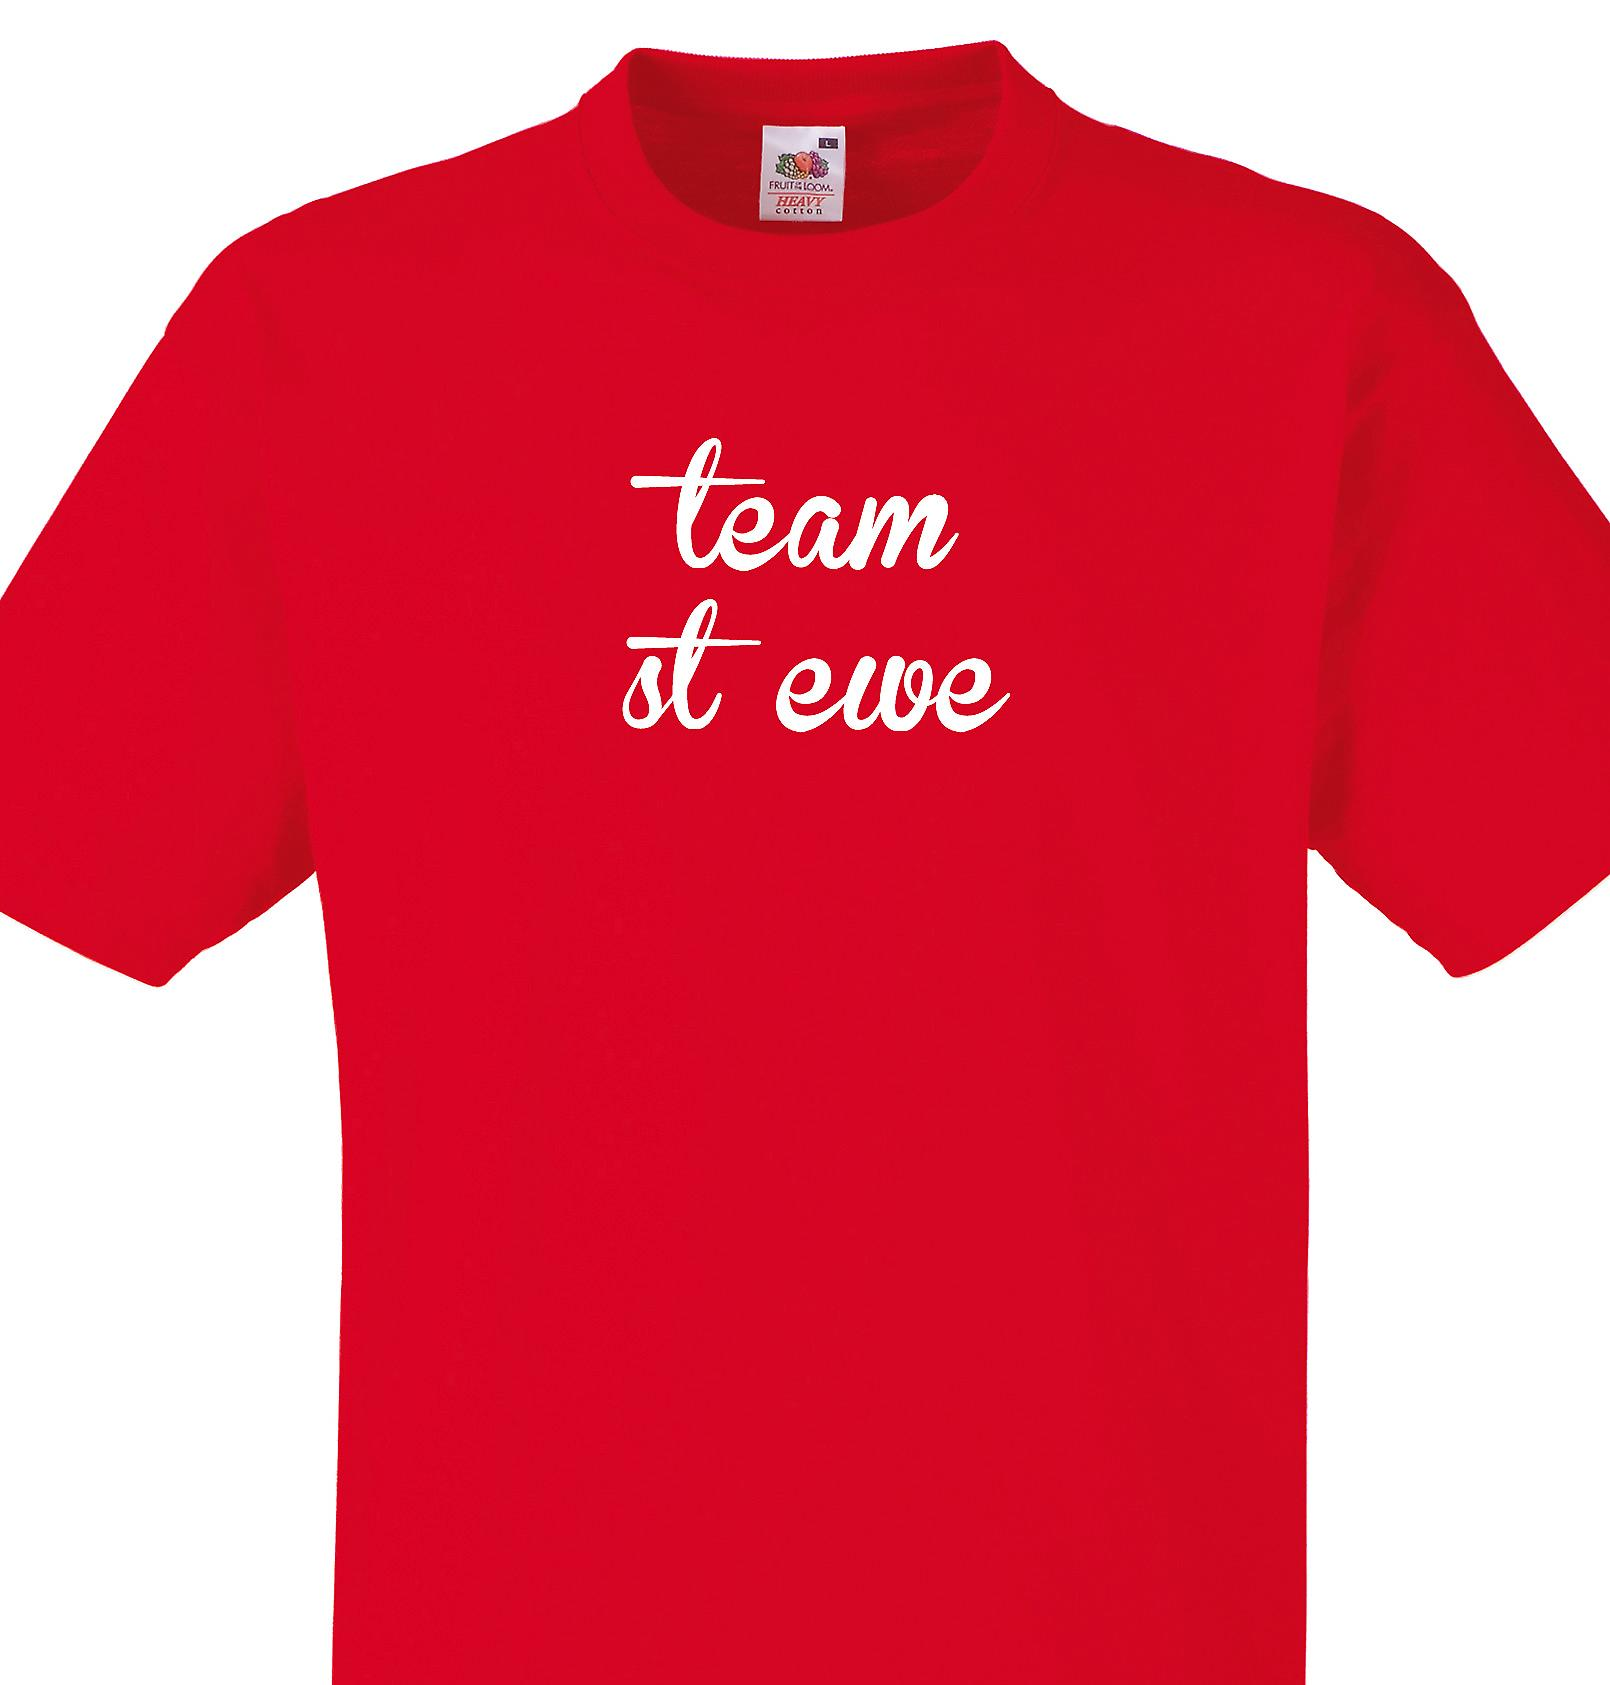 Team St ewe Red T shirt